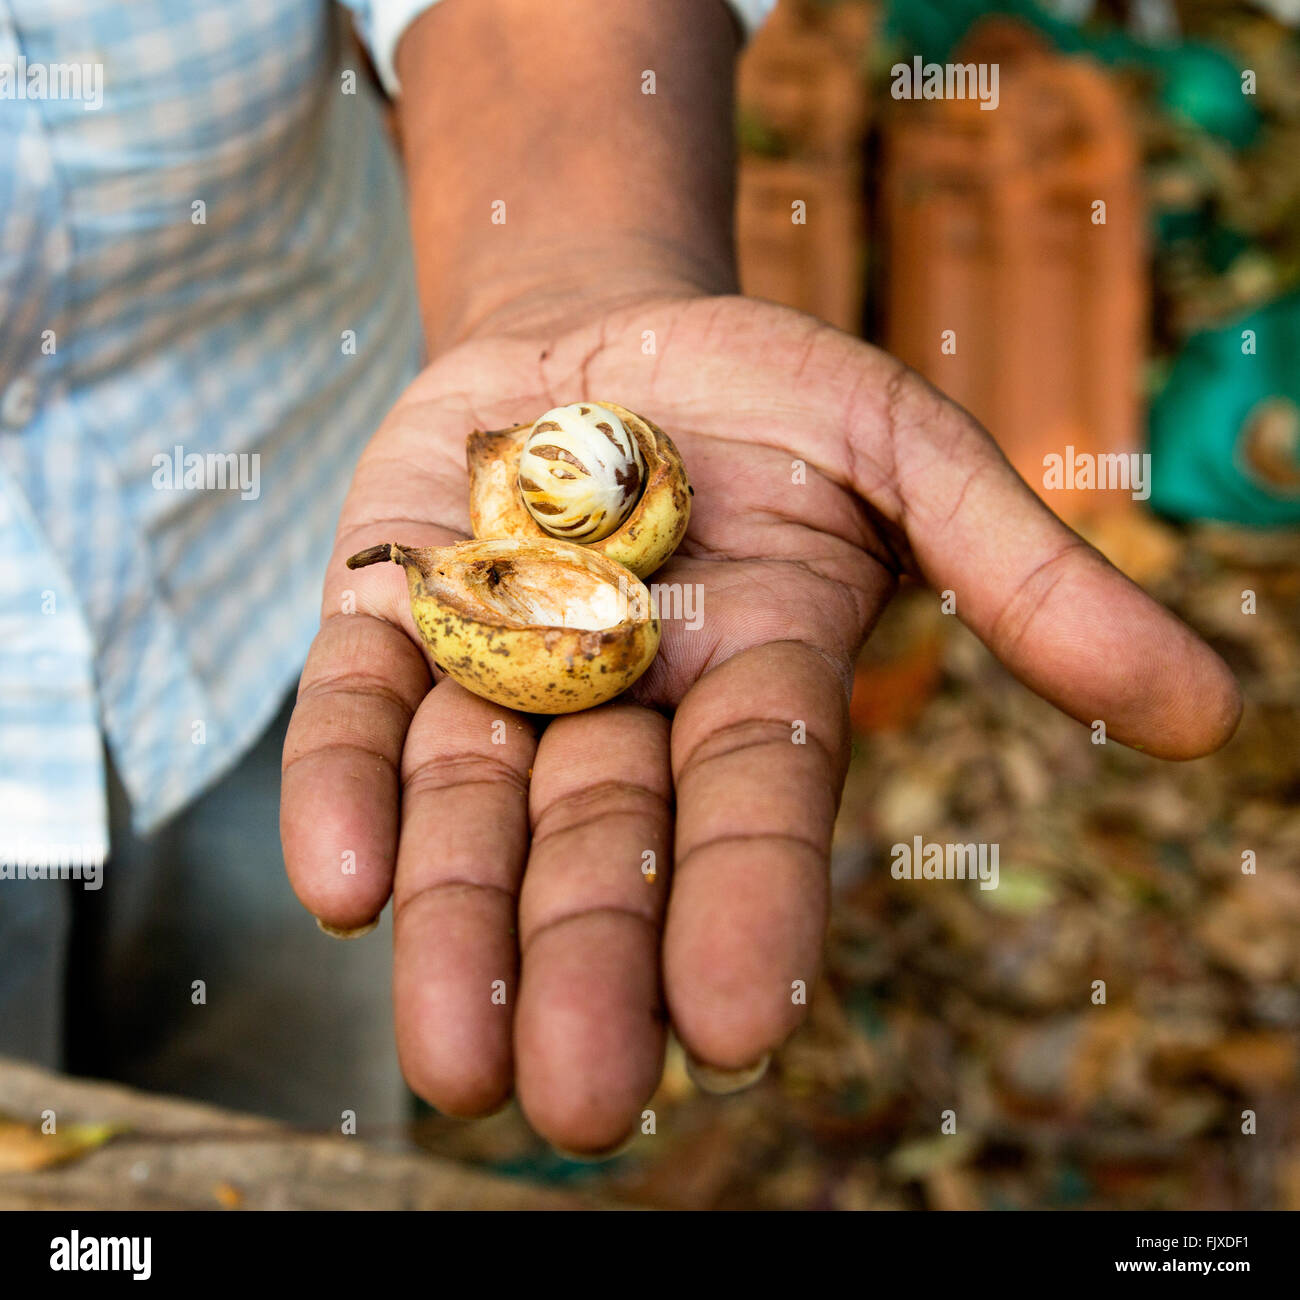 Nutmeg Spice Kerala India - Stock Image